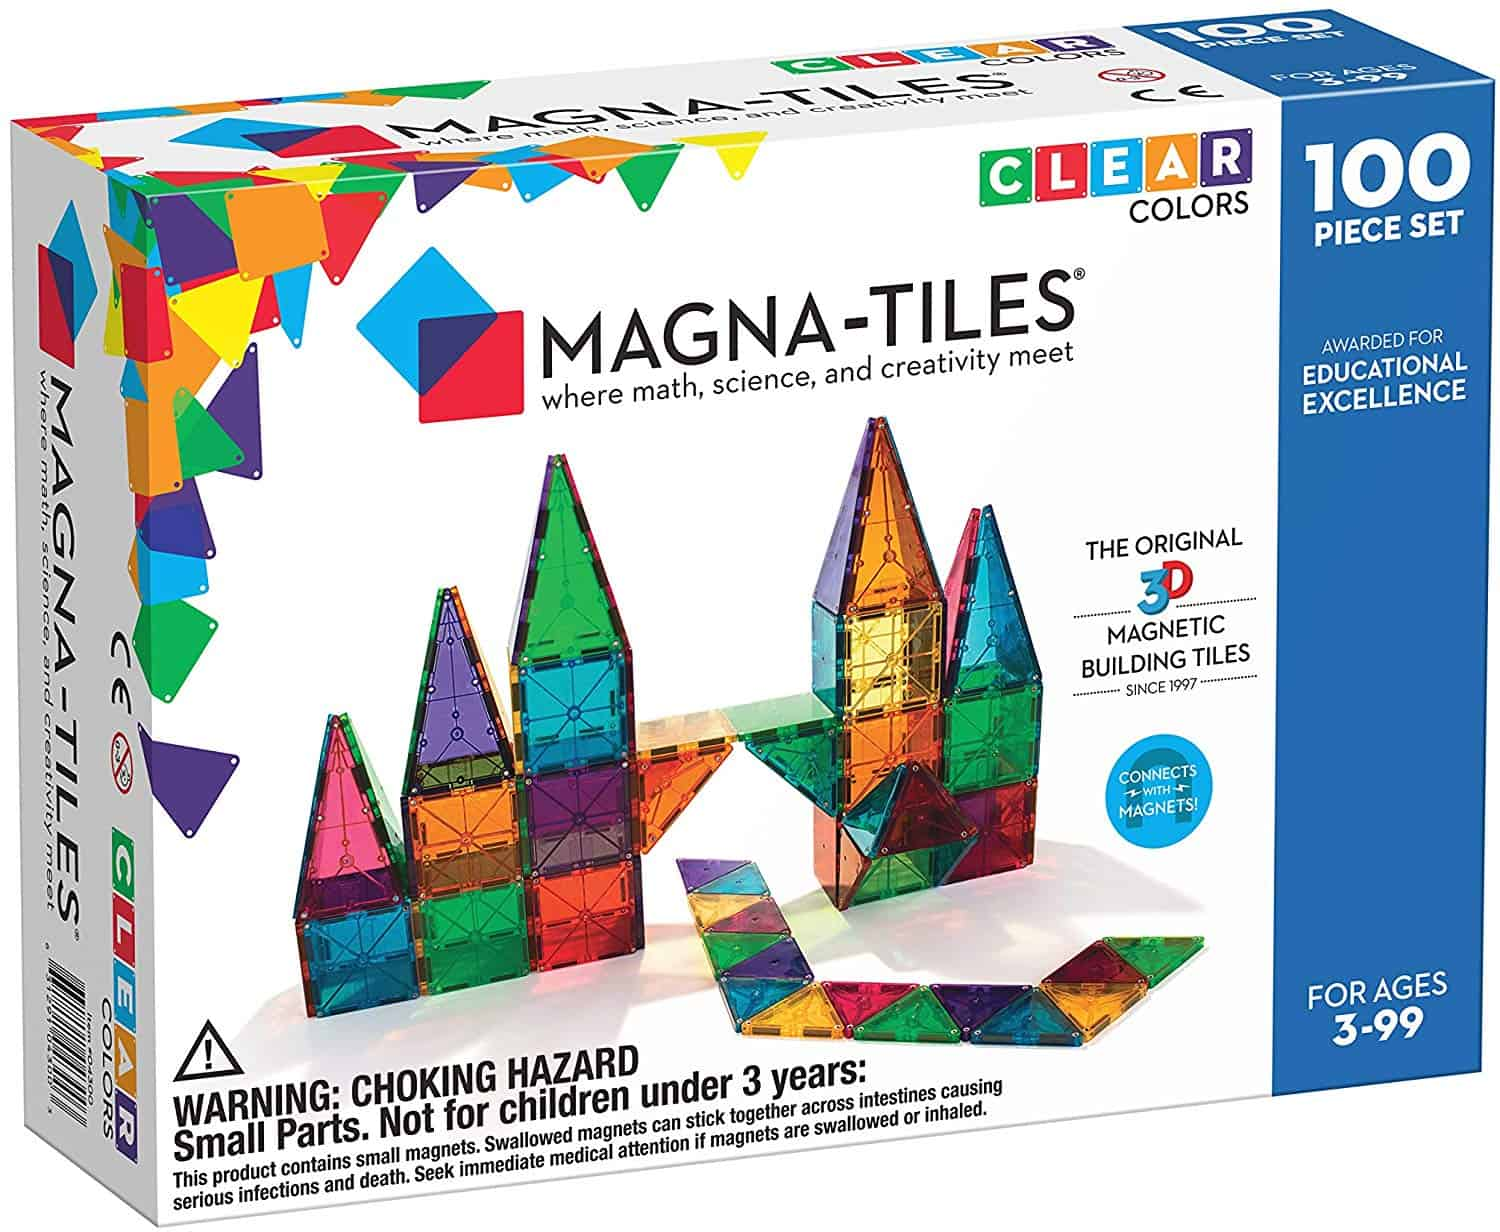 Magna-Tiles Clear Colors 100 Piece Set